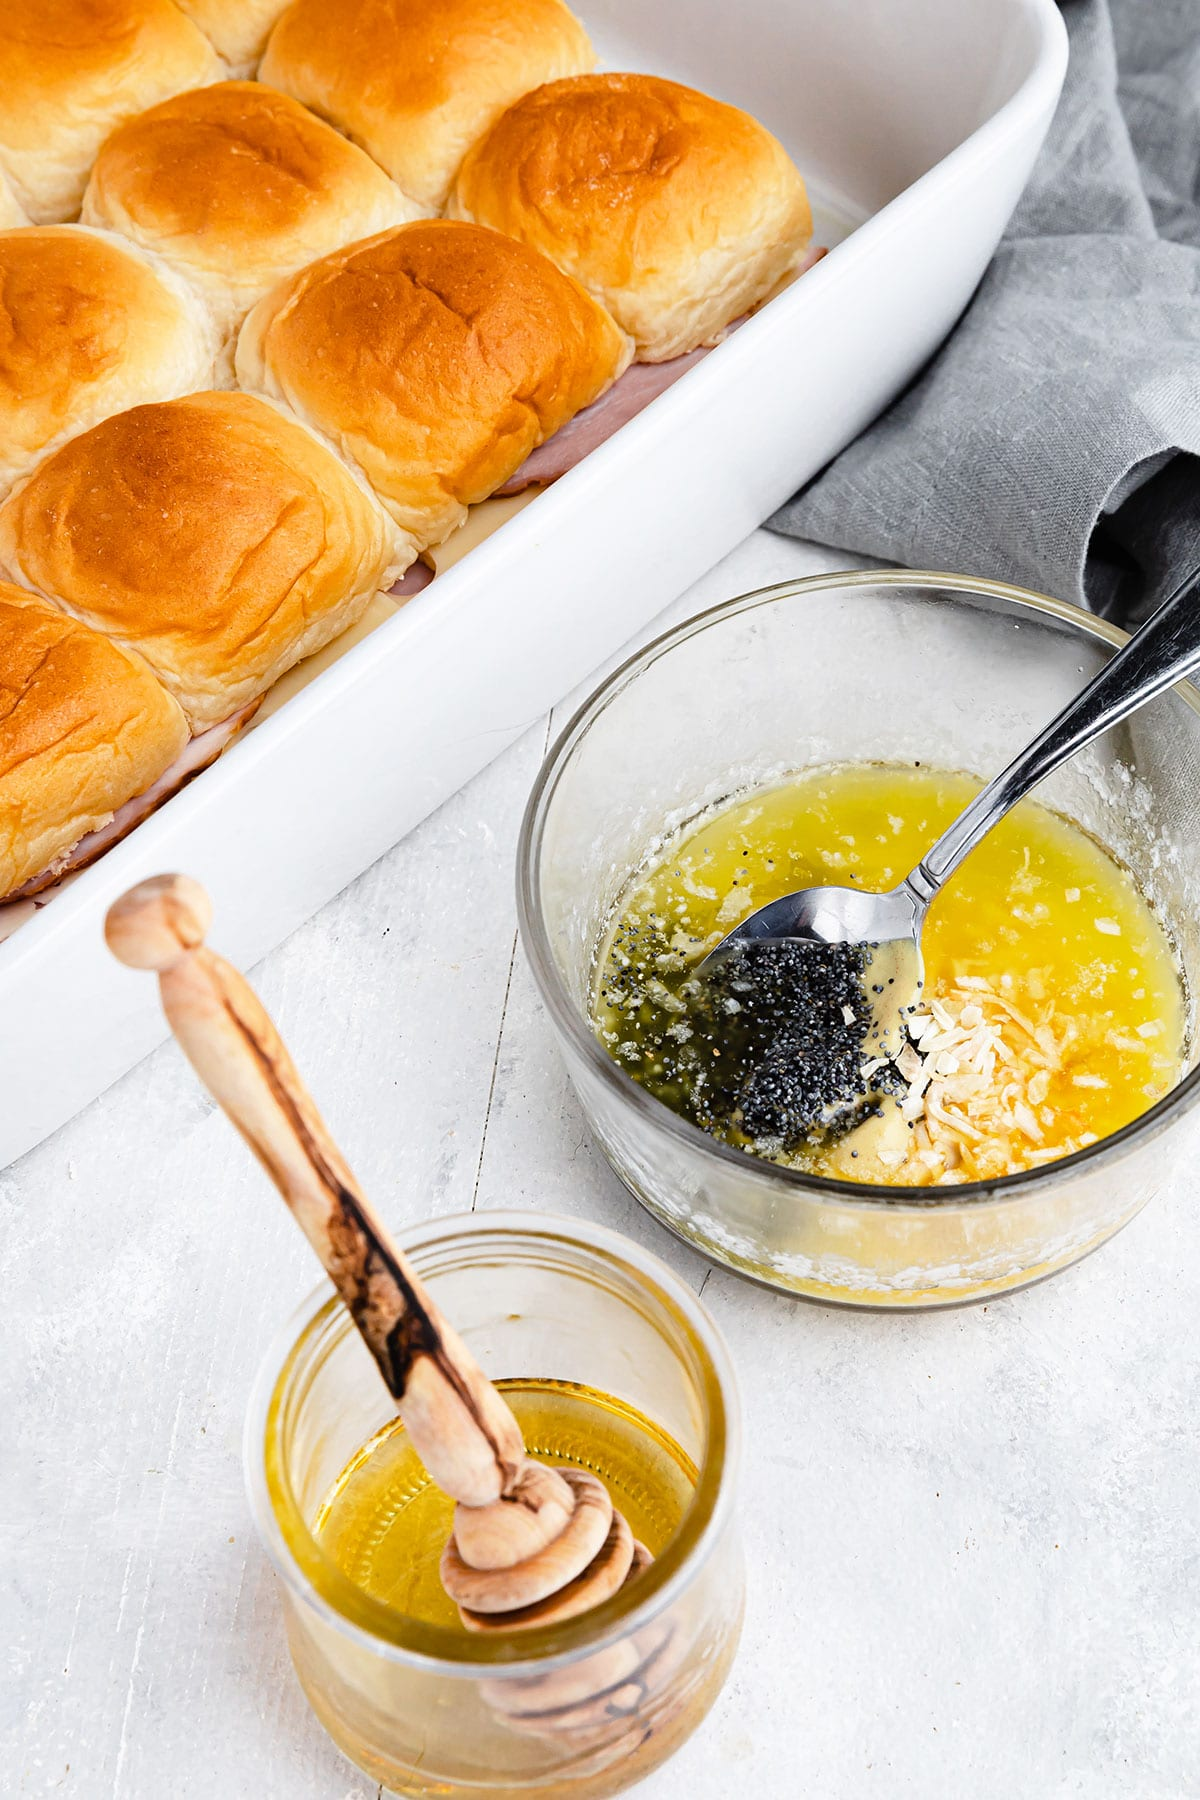 A bowl of honey beside a bowl containing the remaining glaze ingredients with the sliders in the background